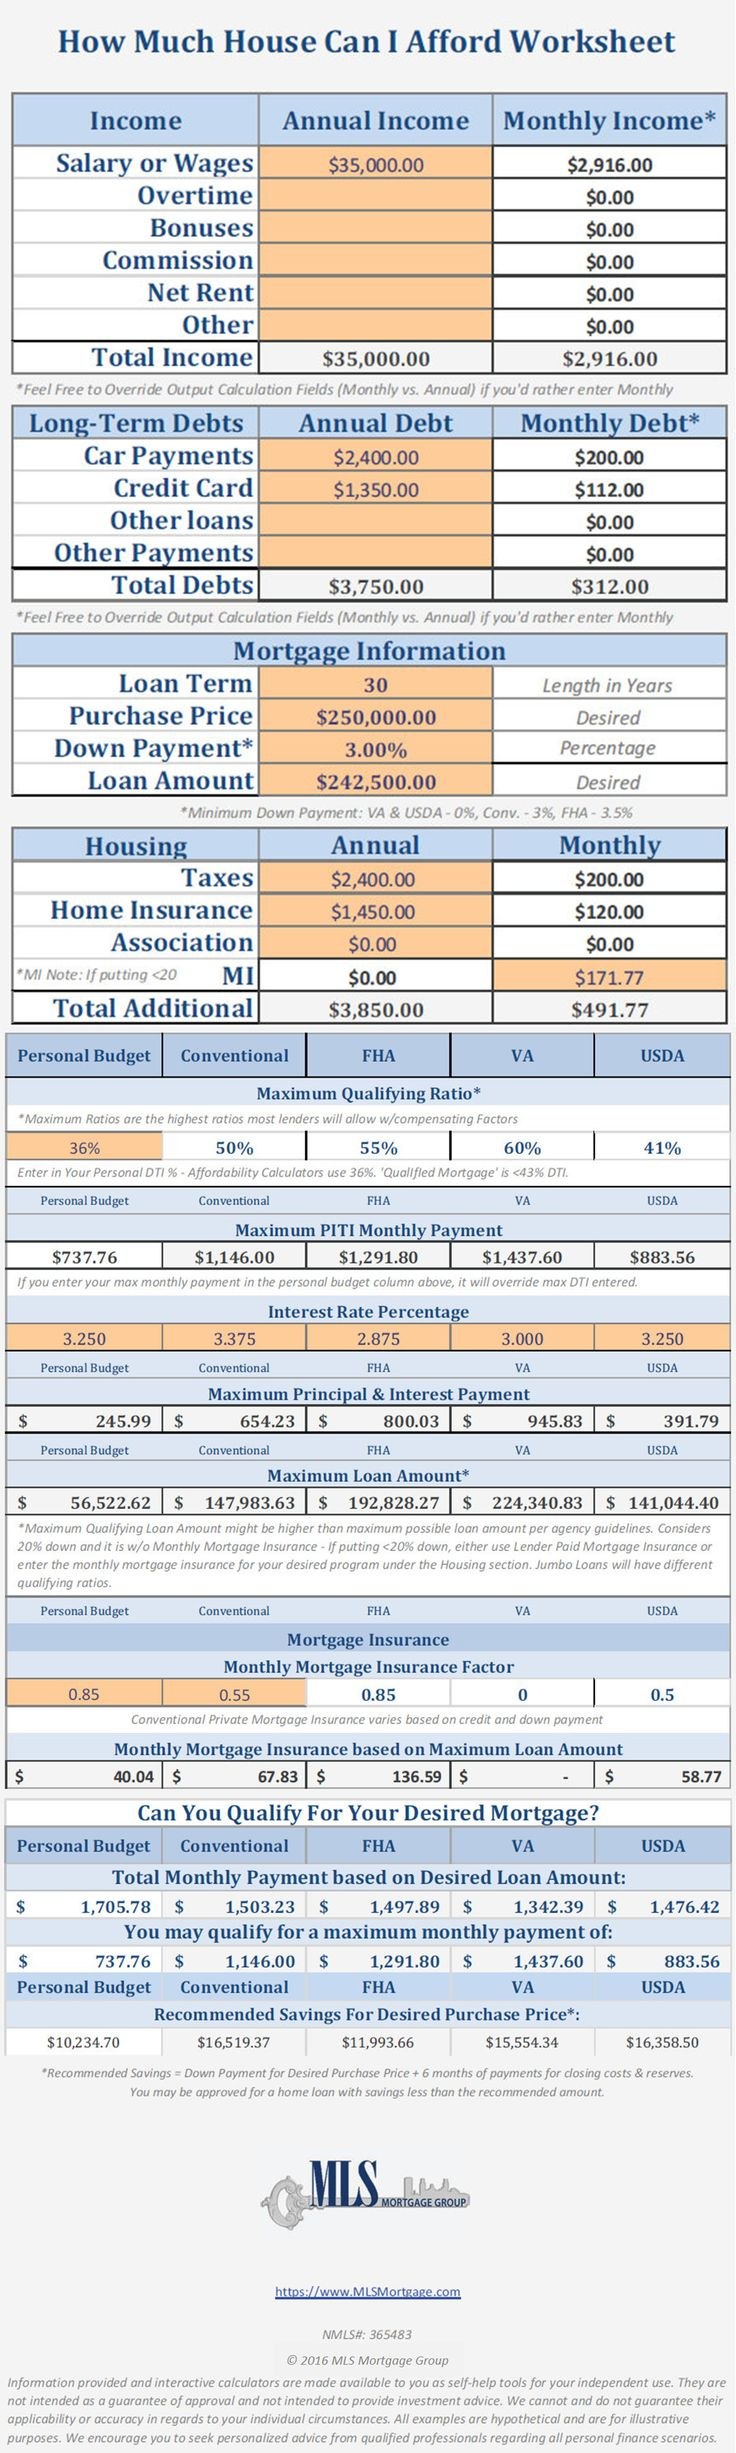 Free Worksheet Budgeting For Dummies Worksheet 17 best ideas about home budget worksheet on pinterest how much house can i afford compares your personal budget